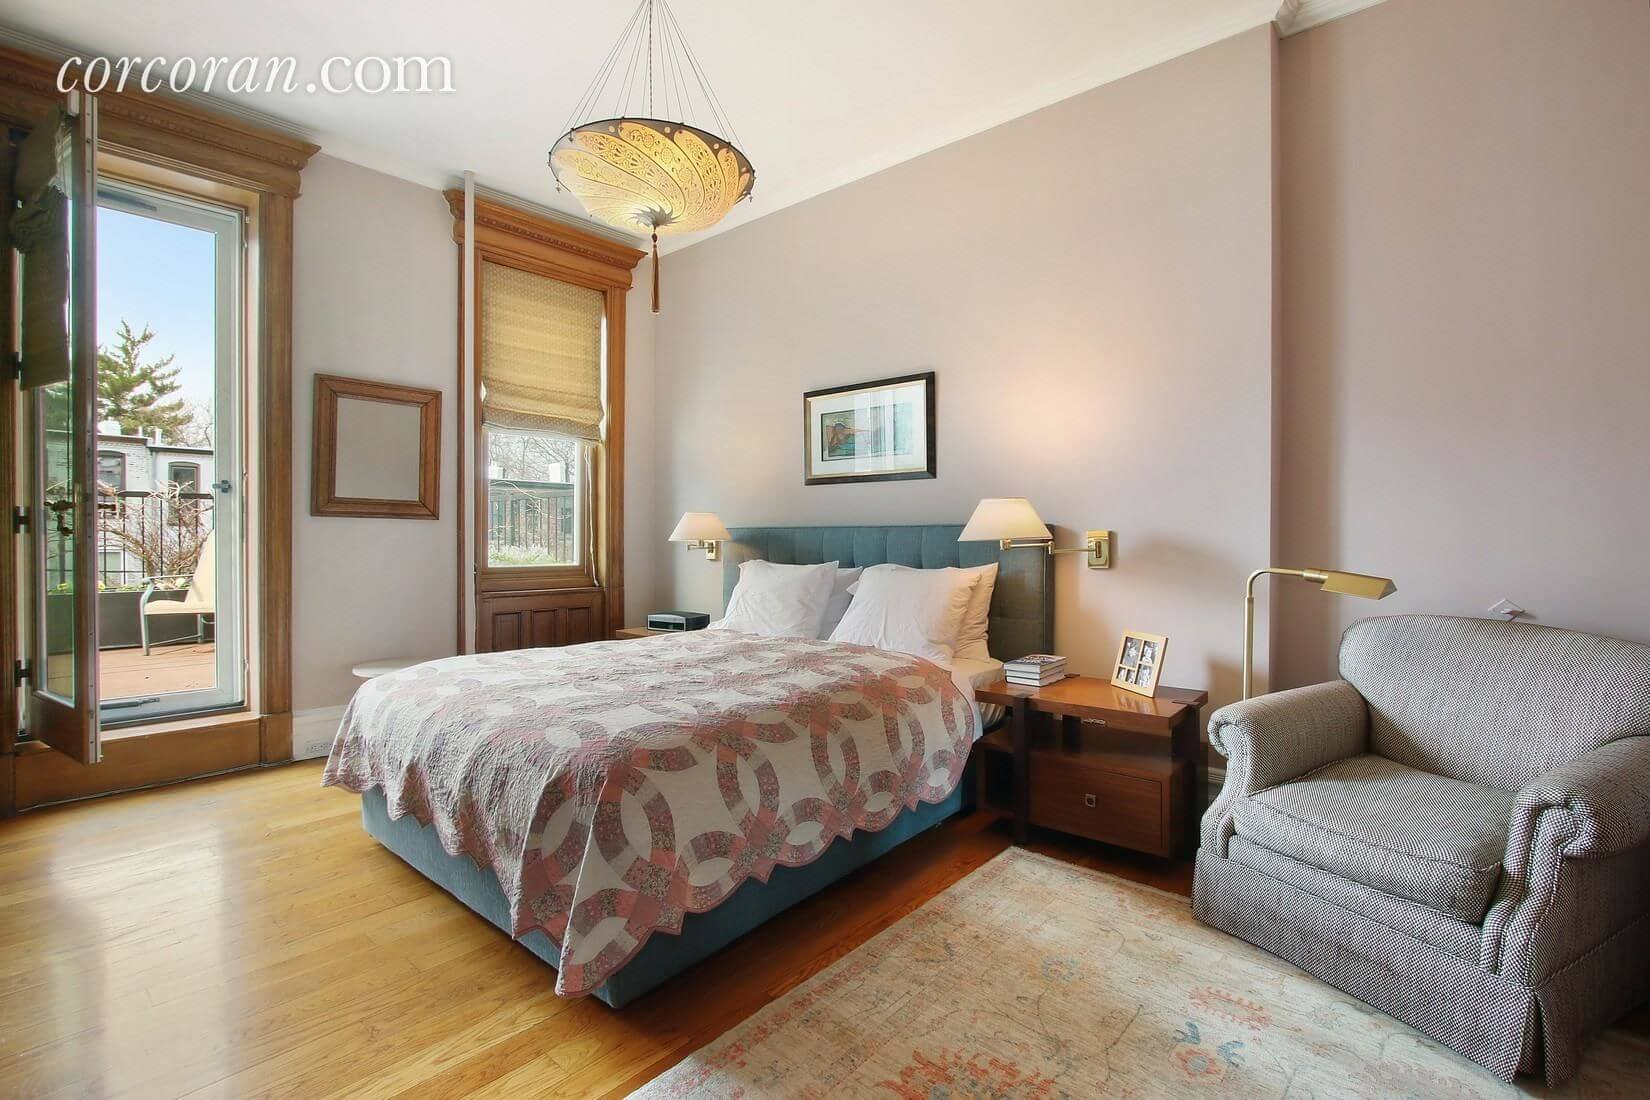 Brooklyn Homes for Sale in Park Slope at 408 4th Street